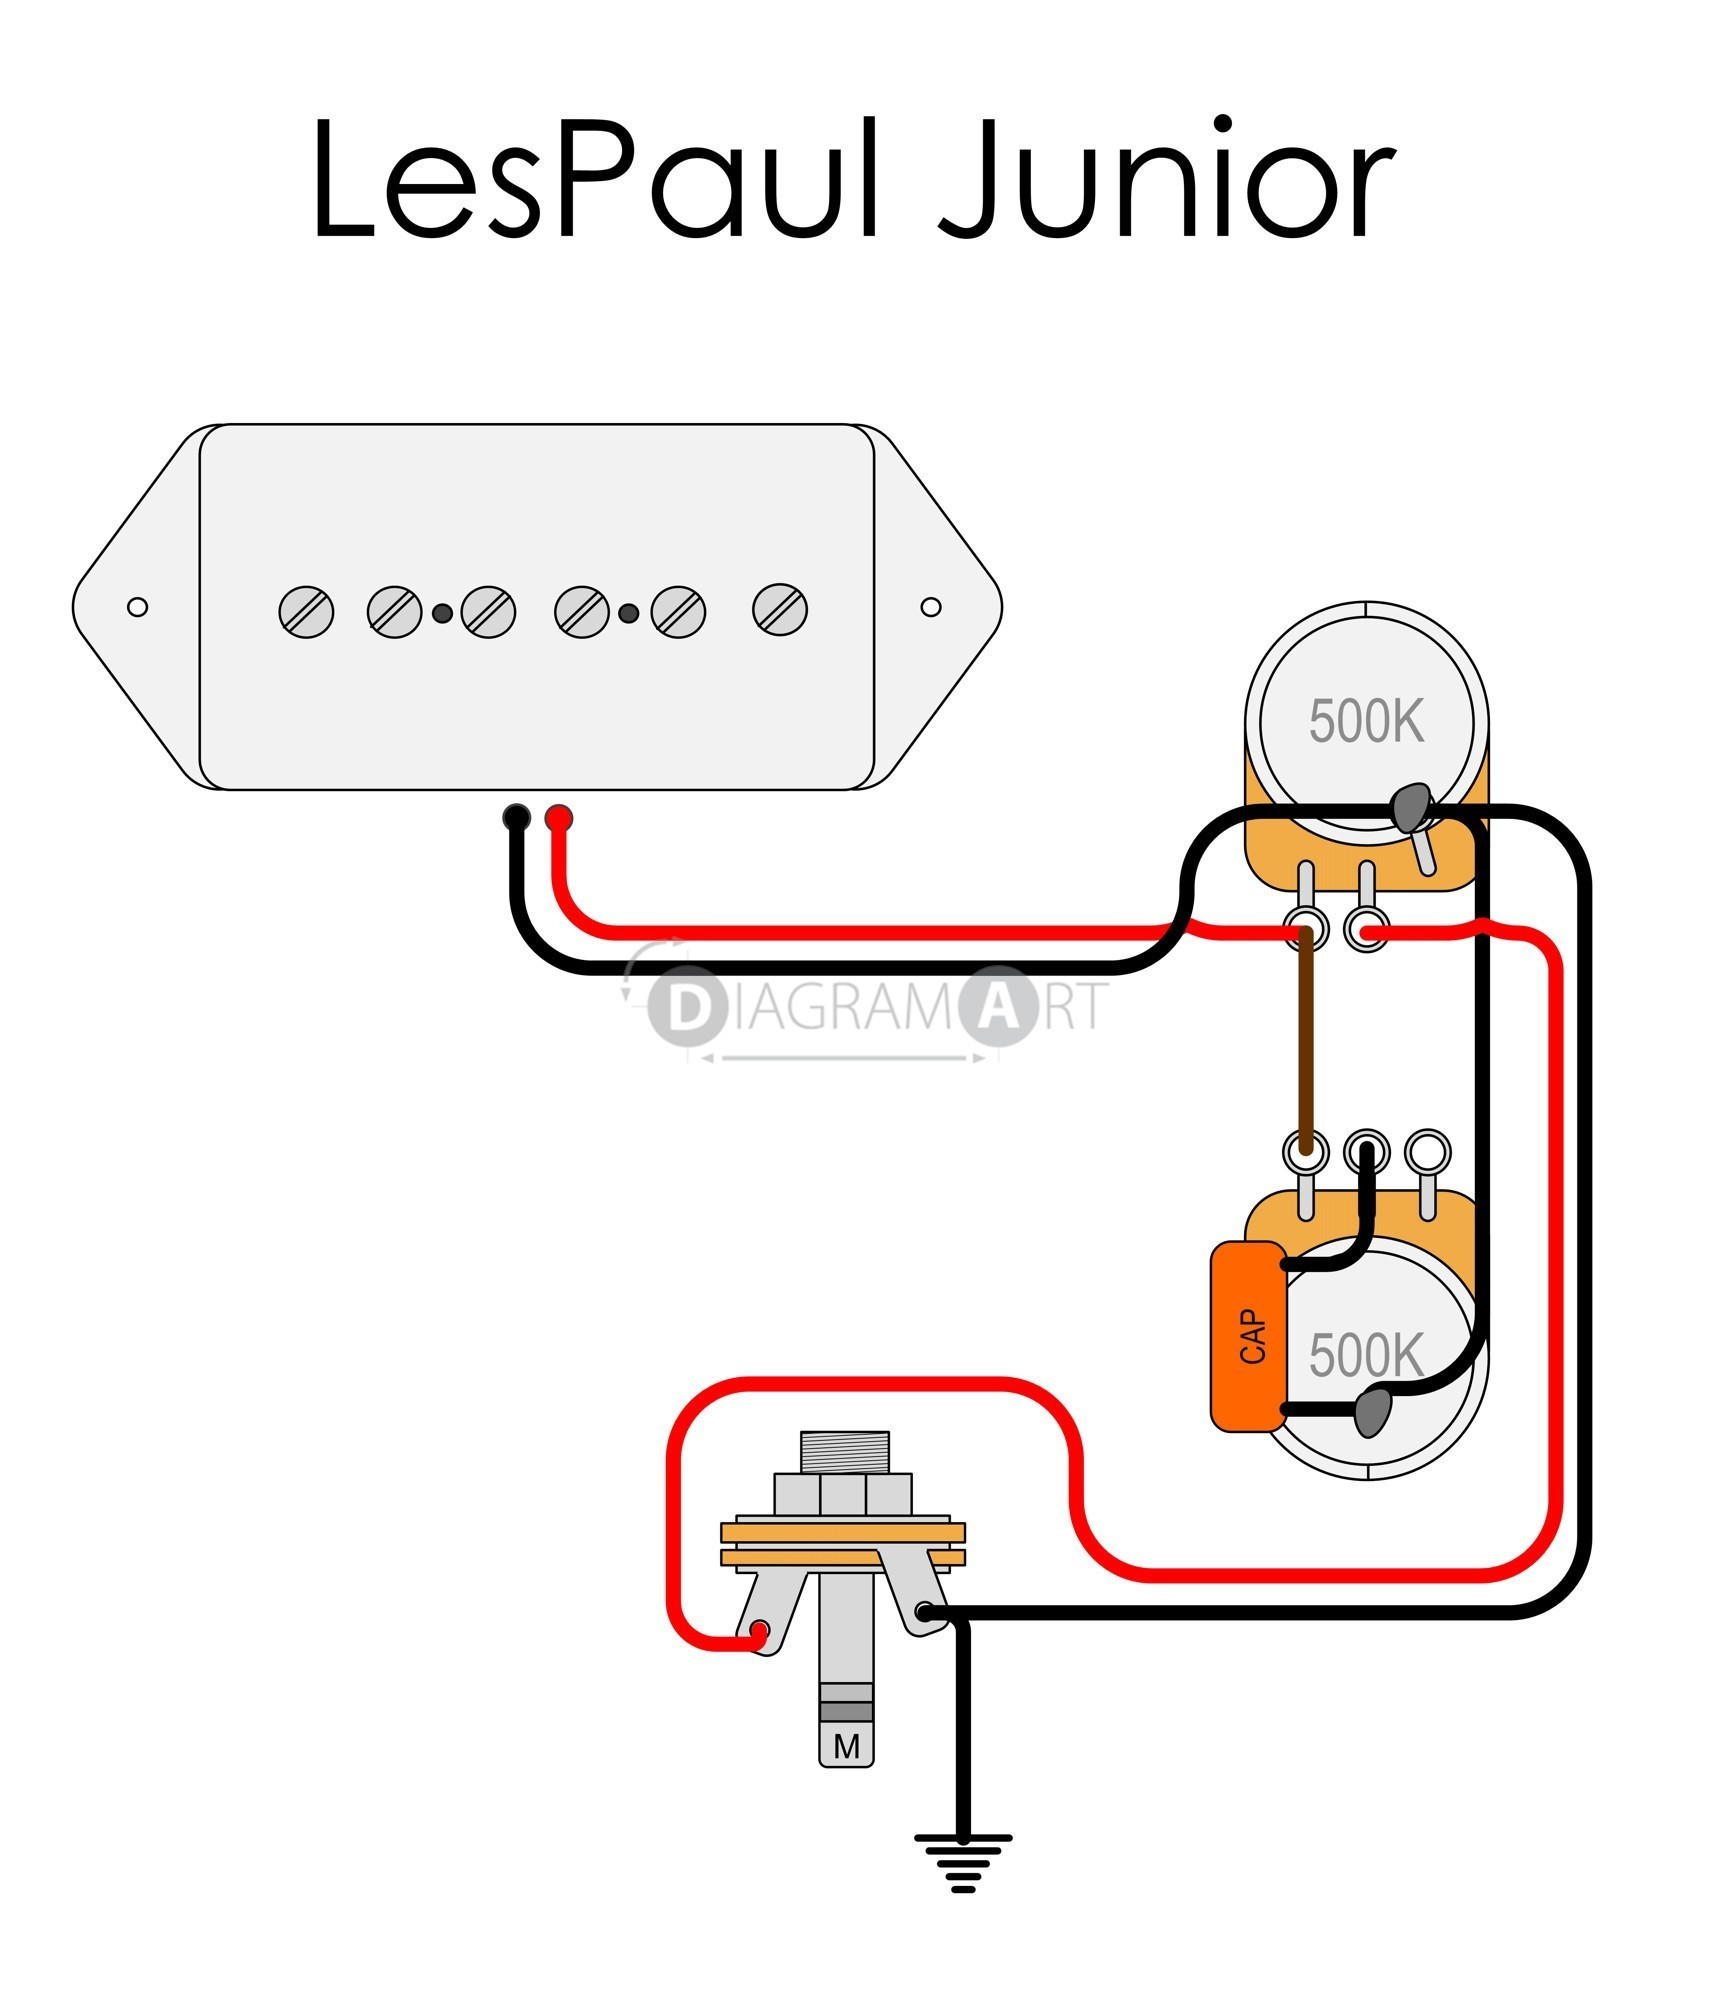 Les Paul 50s Wiring Diagram Wiring Diagram Les Paul Guitar Inspirational Wiring Diagram for Of Les Paul 50s Wiring Diagram